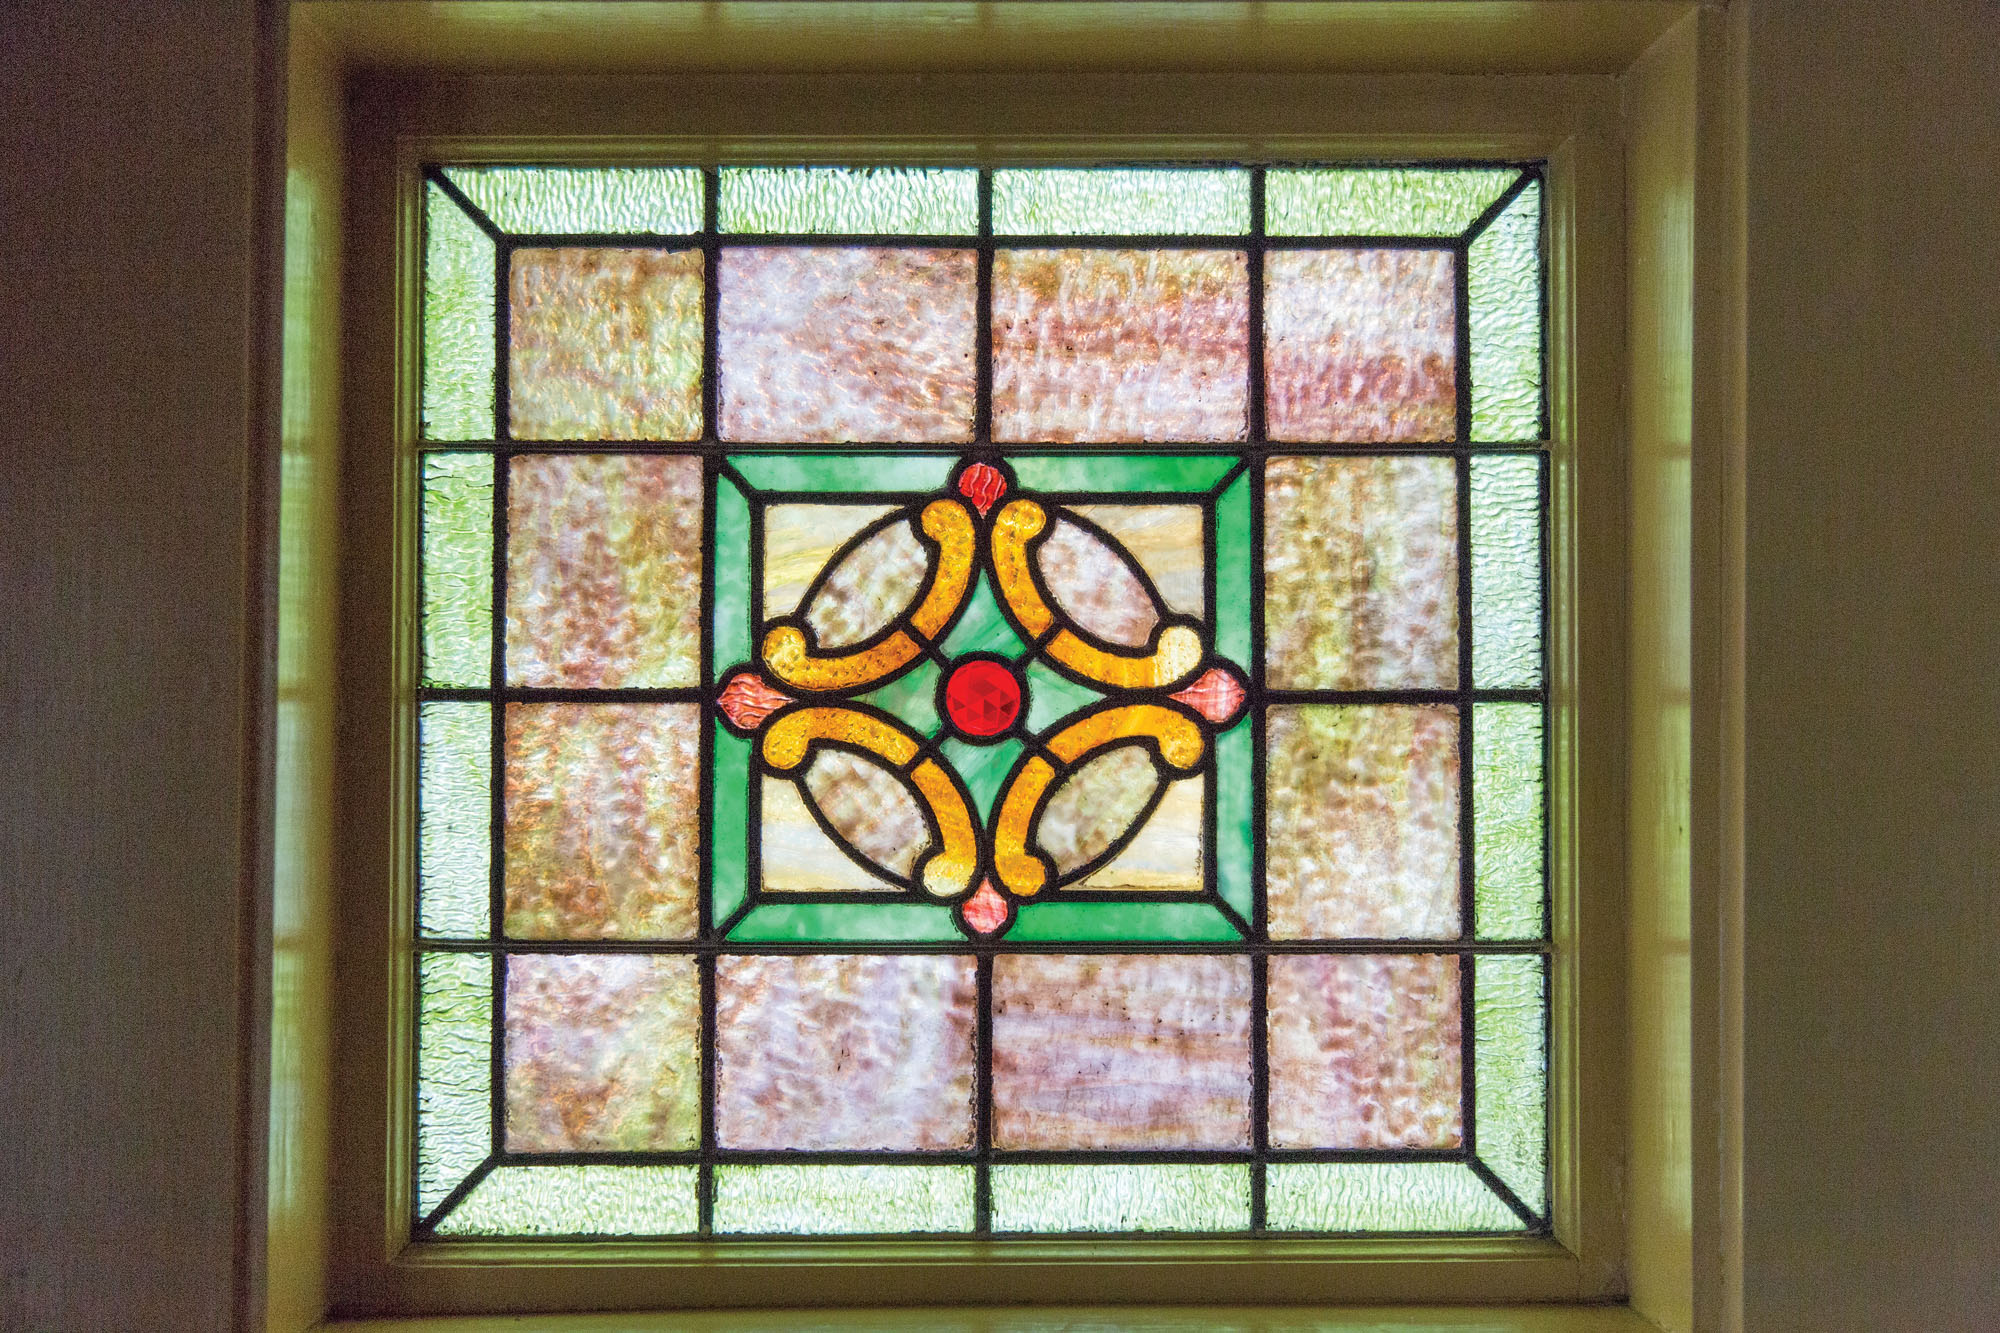 Arts & Crafts stained-glass window